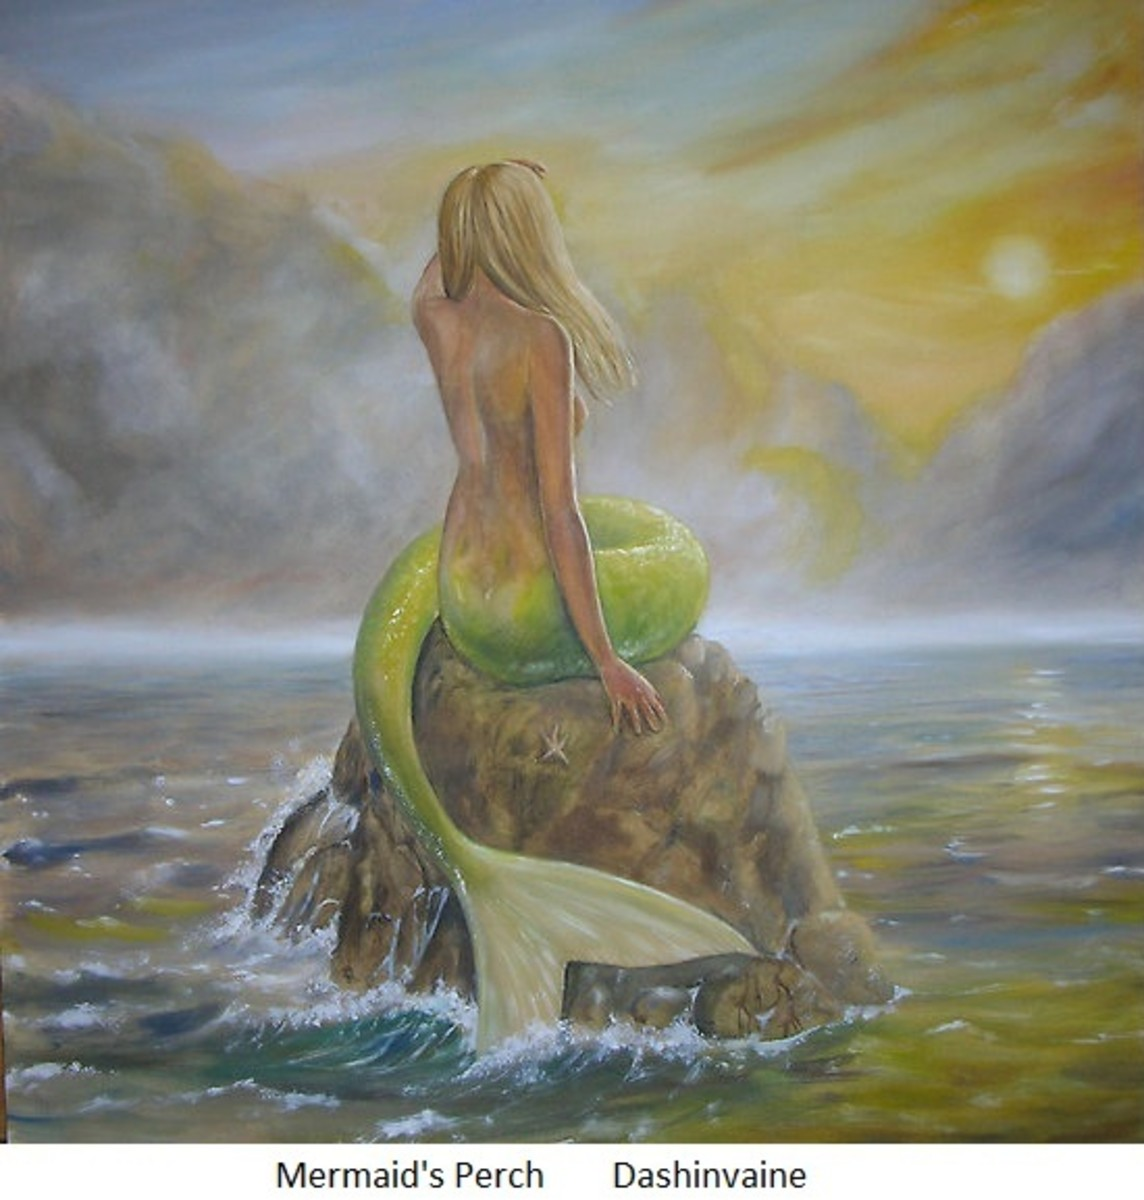 The mythical image of a mermaid, but did mermaids really have fish tails?